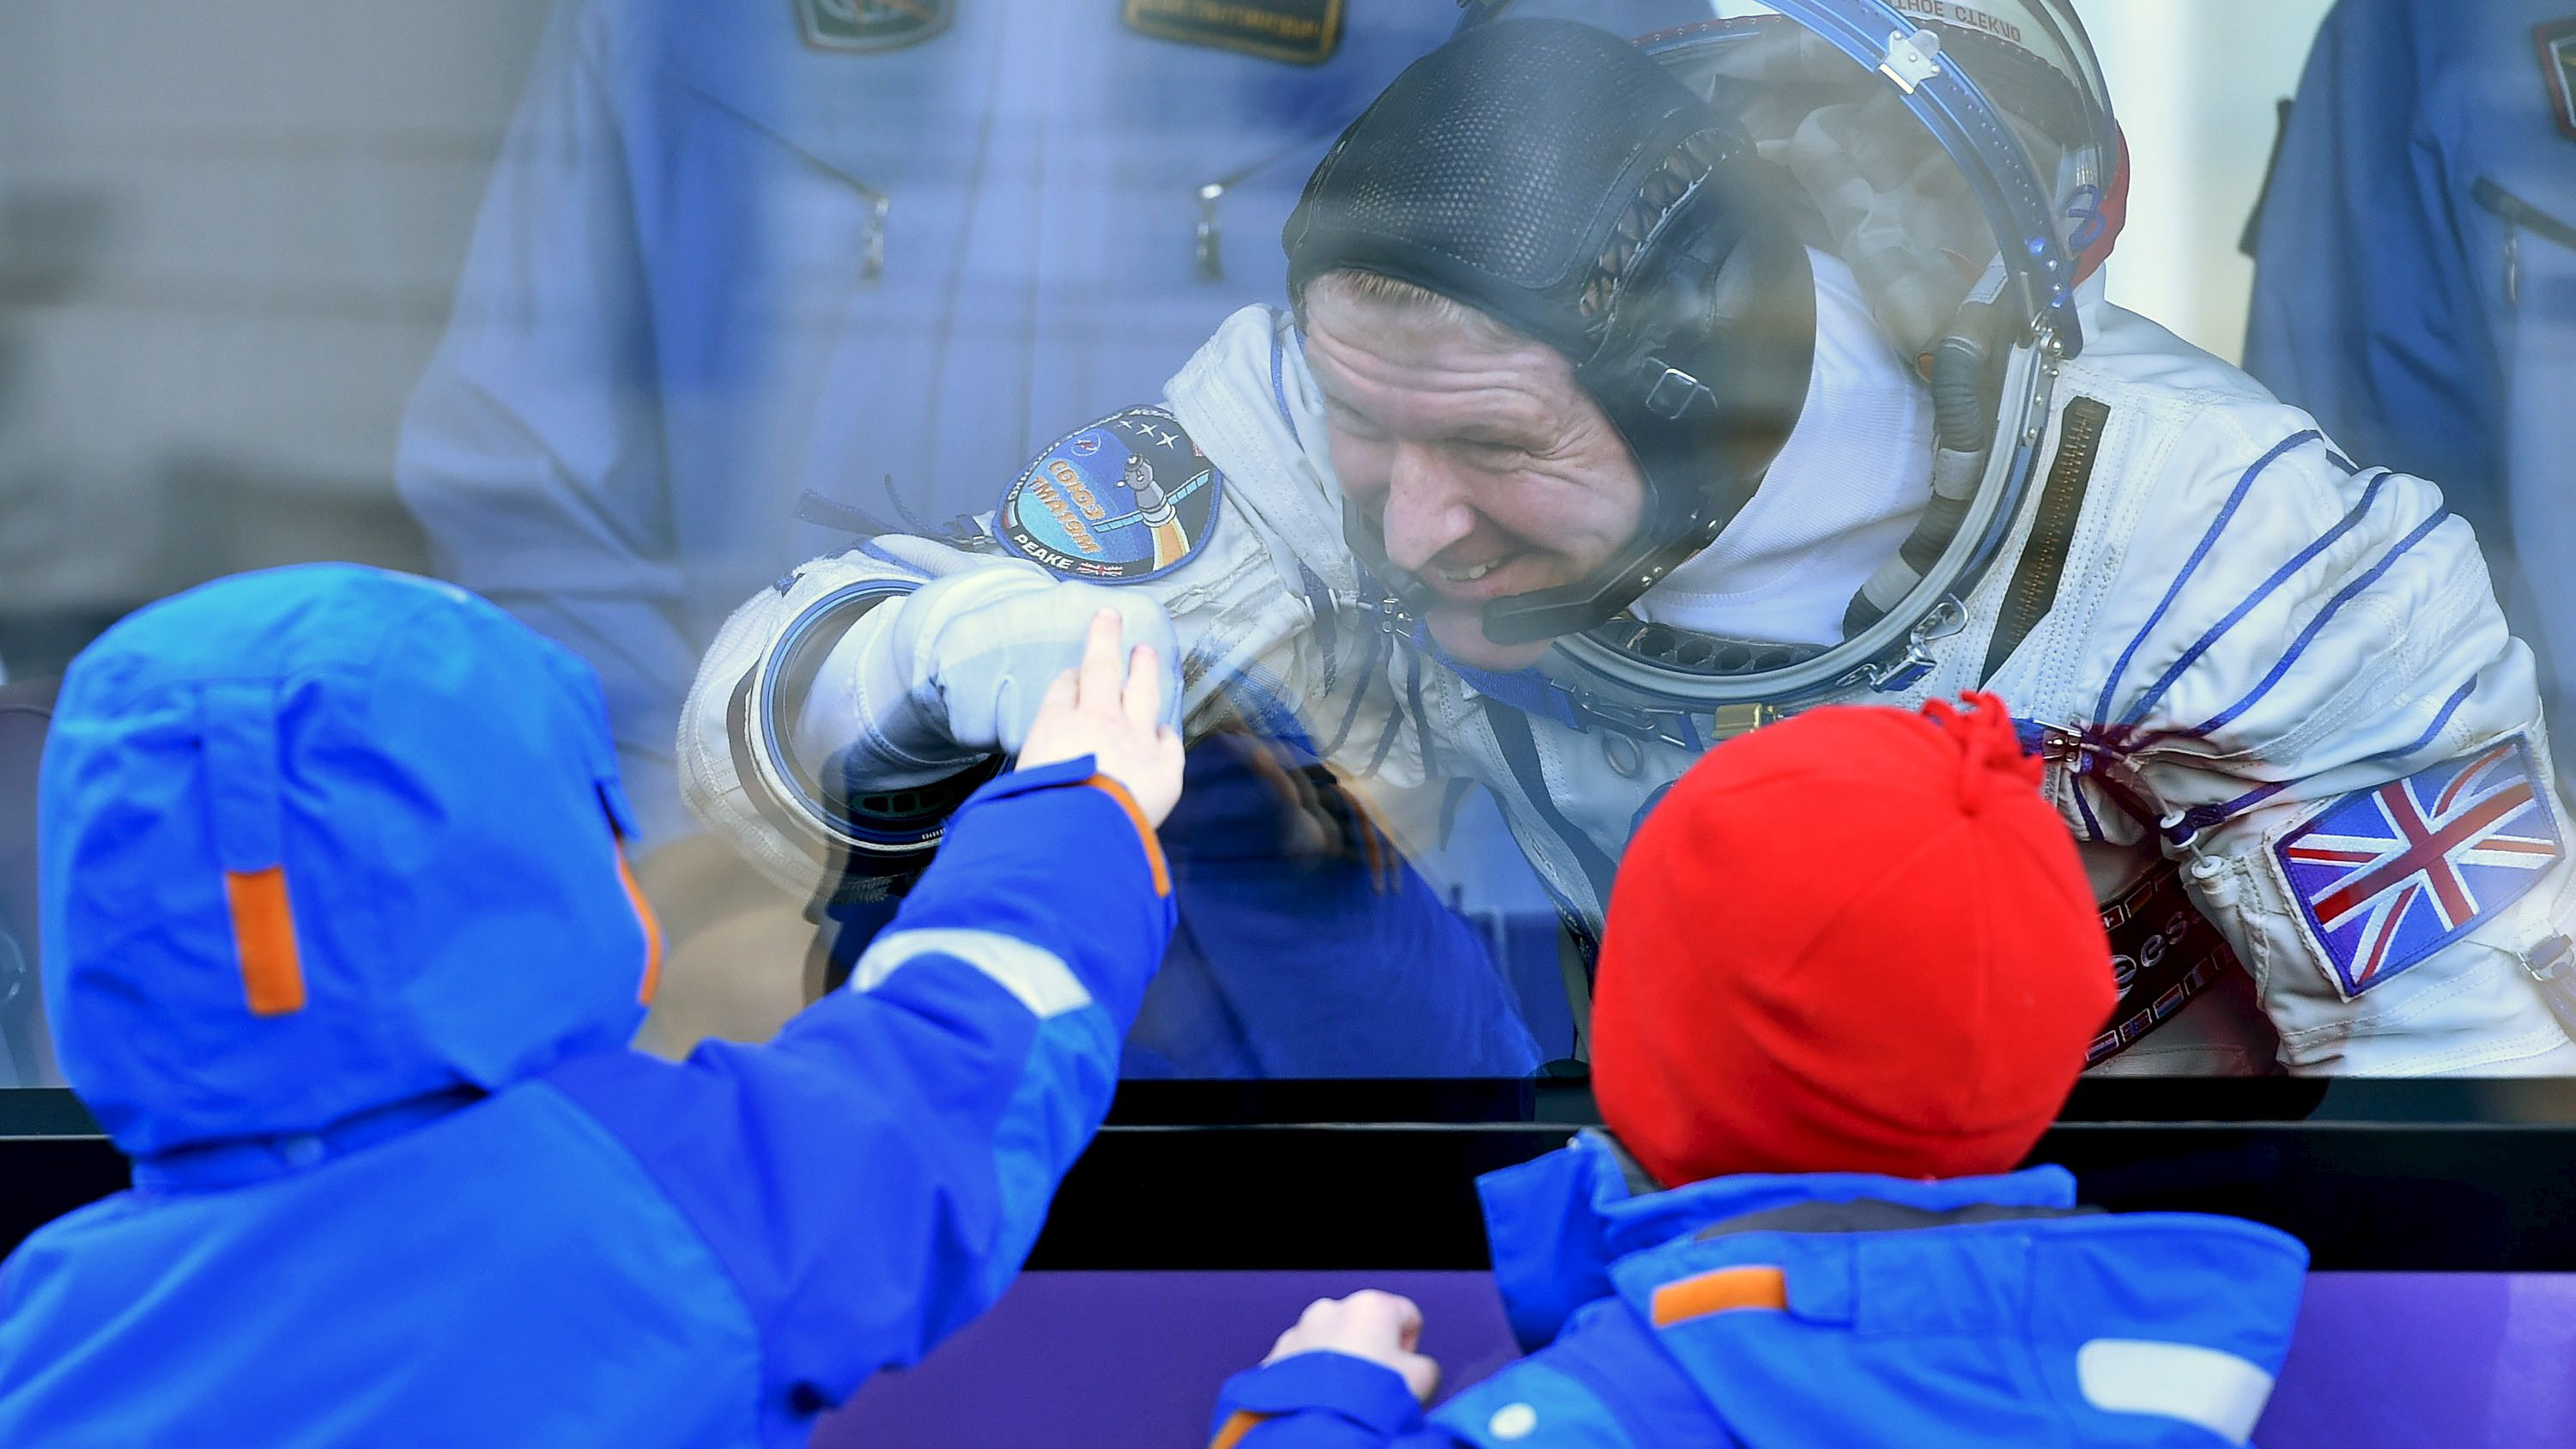 Member of the International Space Station expedition 46/47, British ESA astronaut Timothy Peake gestures to his children during a sending-off ceremony at the Baikonur cosmodrome in Kazakhstan, 15 December 2015, before travelling on board the Soyuz TMA-19M spacecraft to the International Space Station (ISS).